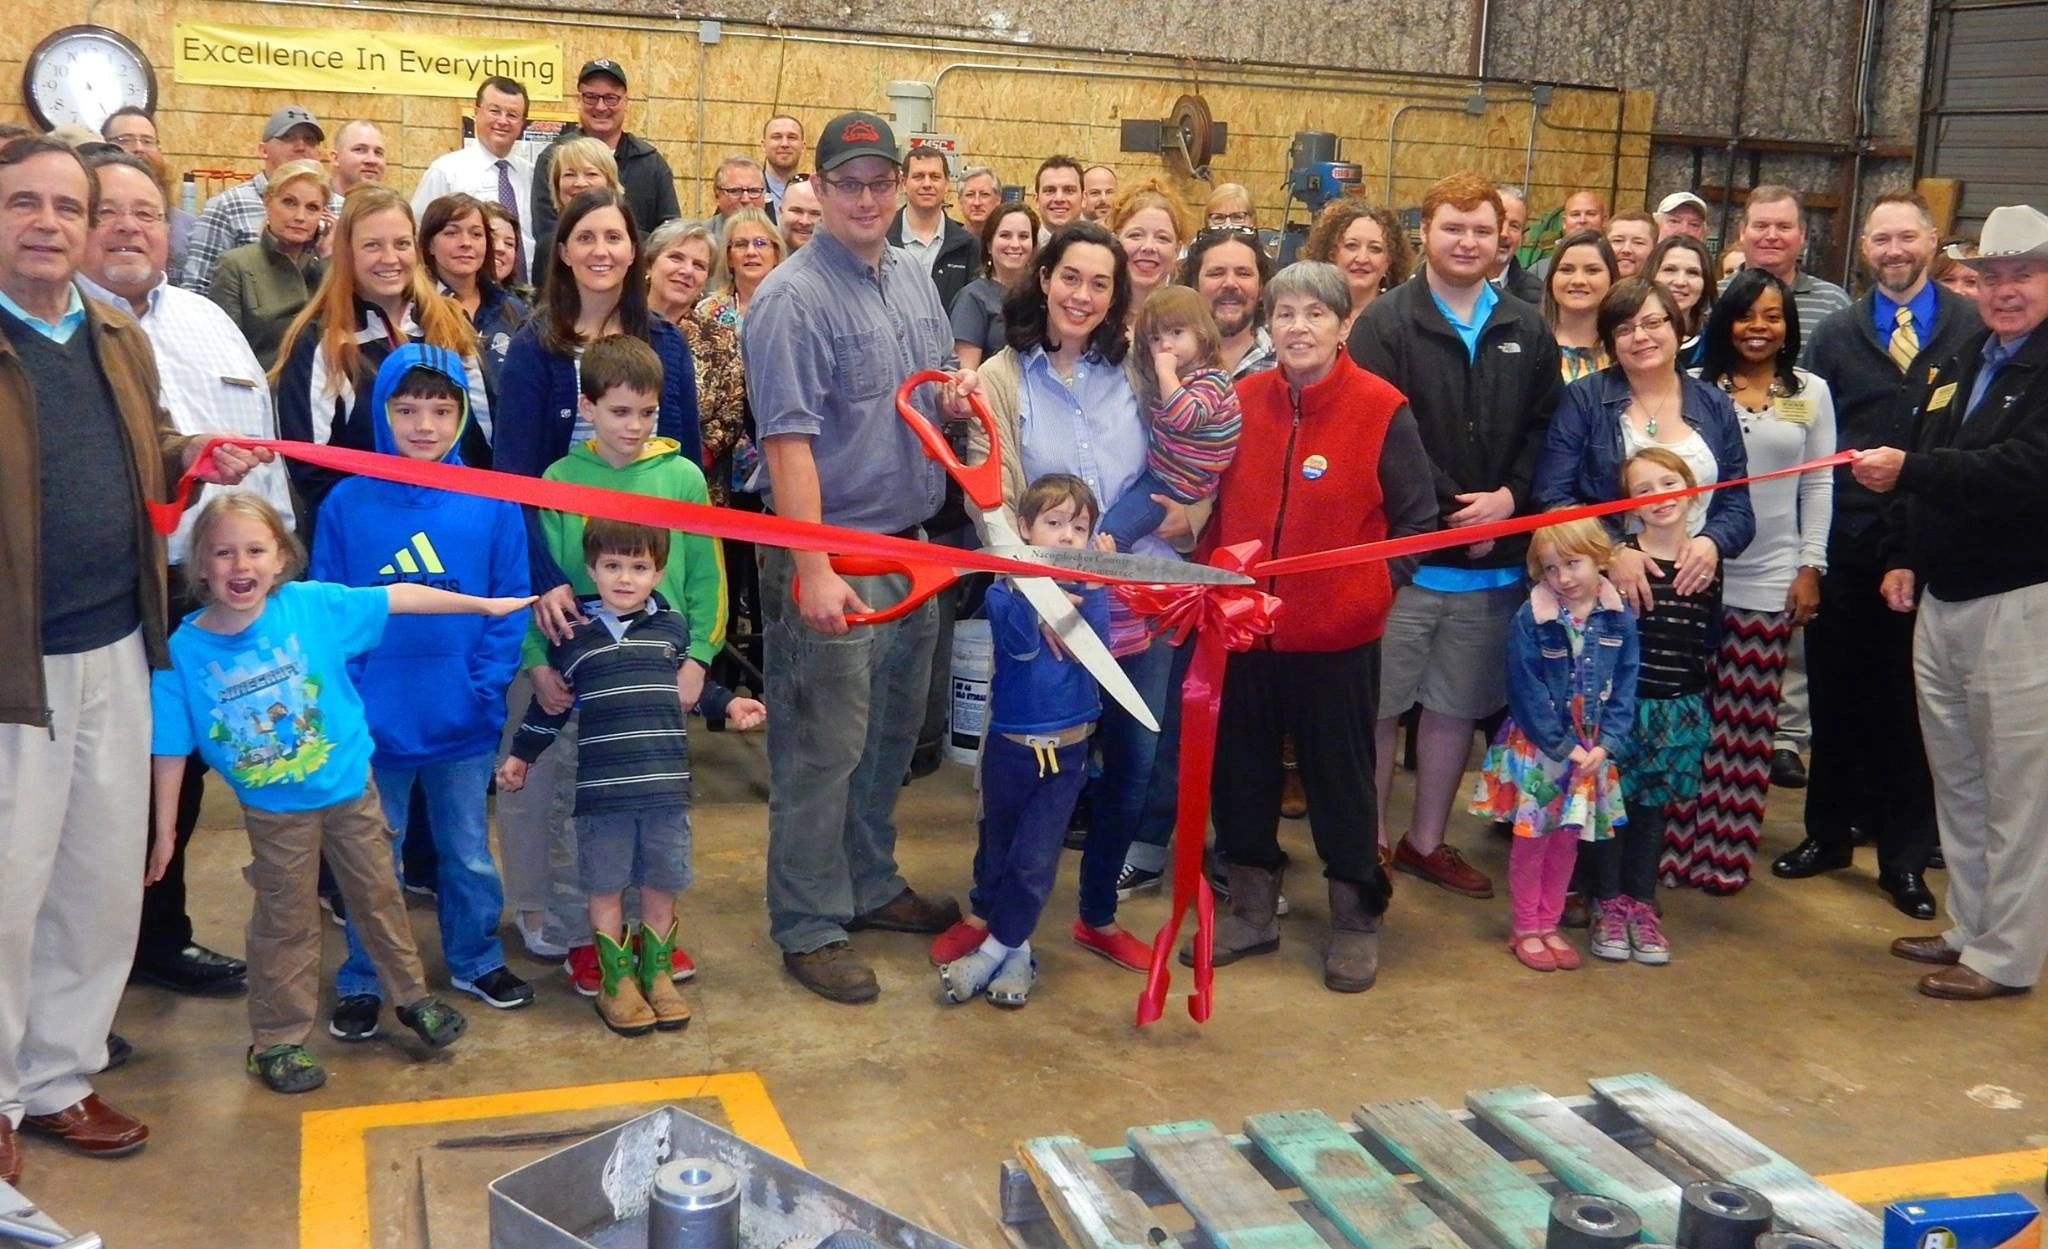 Turner Fabrication ribbon cutting in our main machine shop building in Nacogdoches, TX